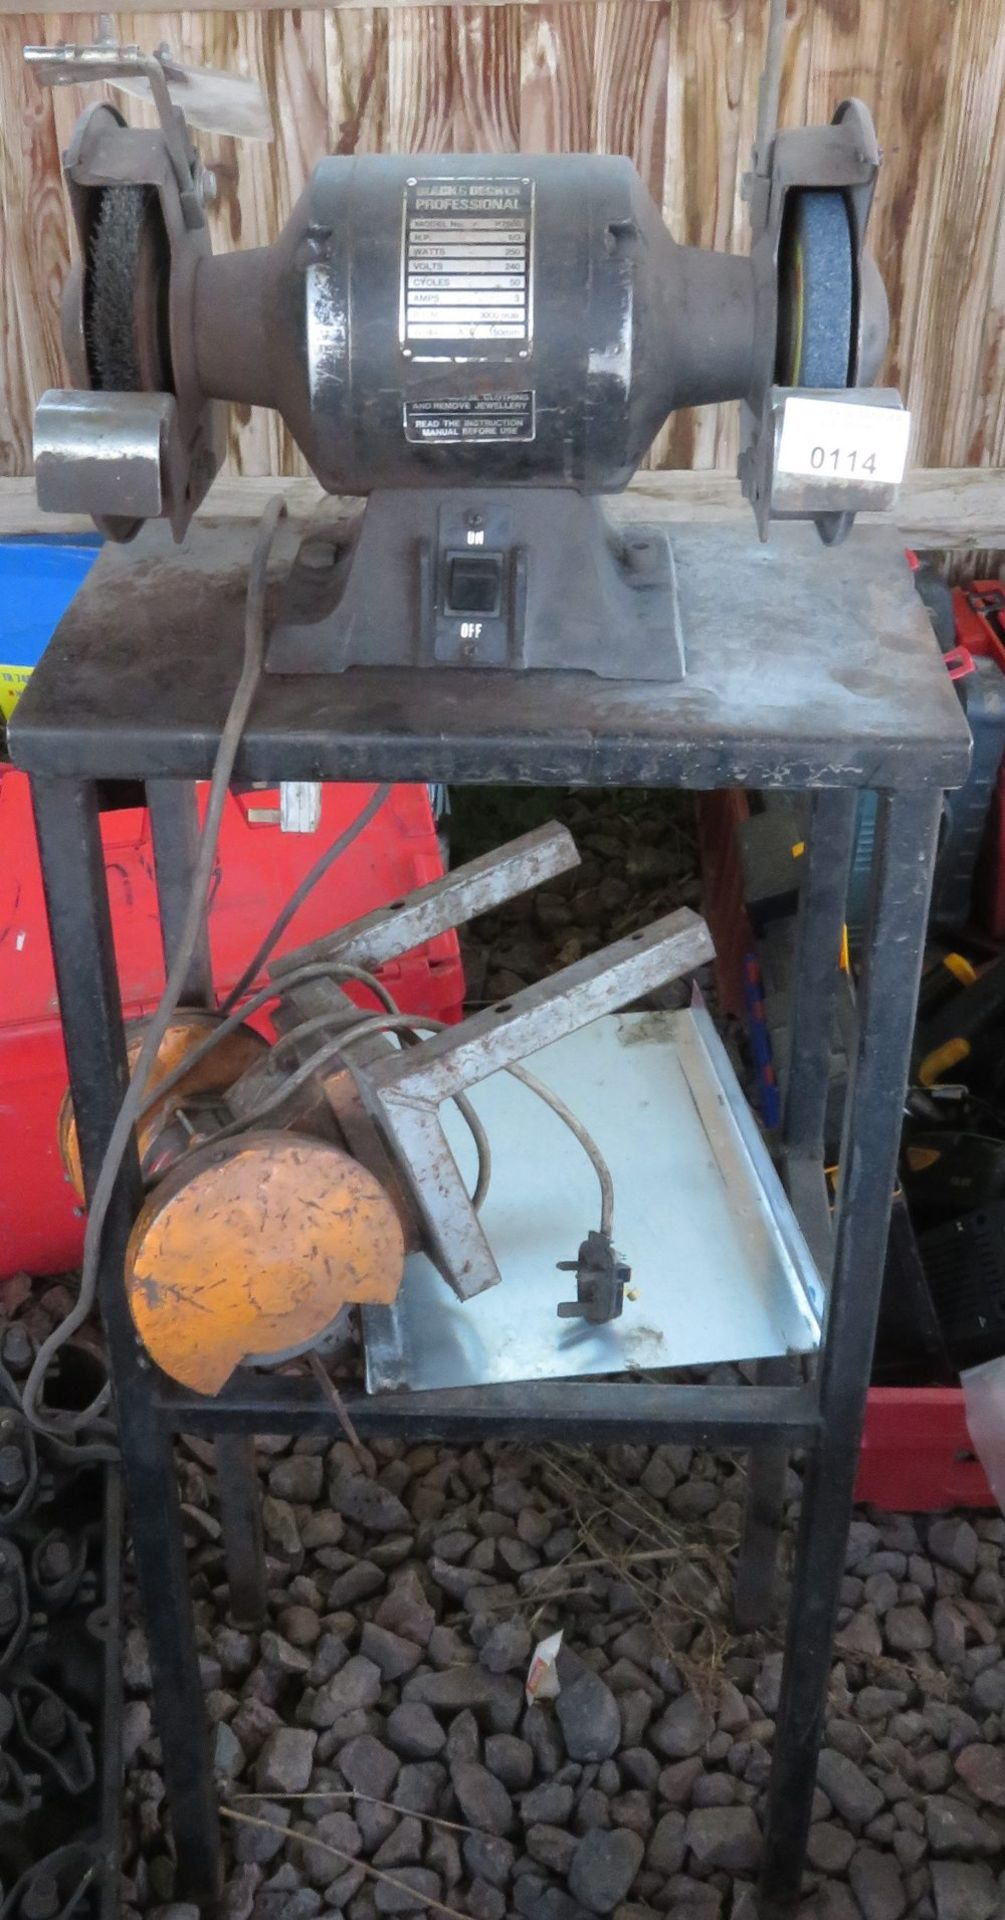 Lot 114 - Grinder on bench with another grinder